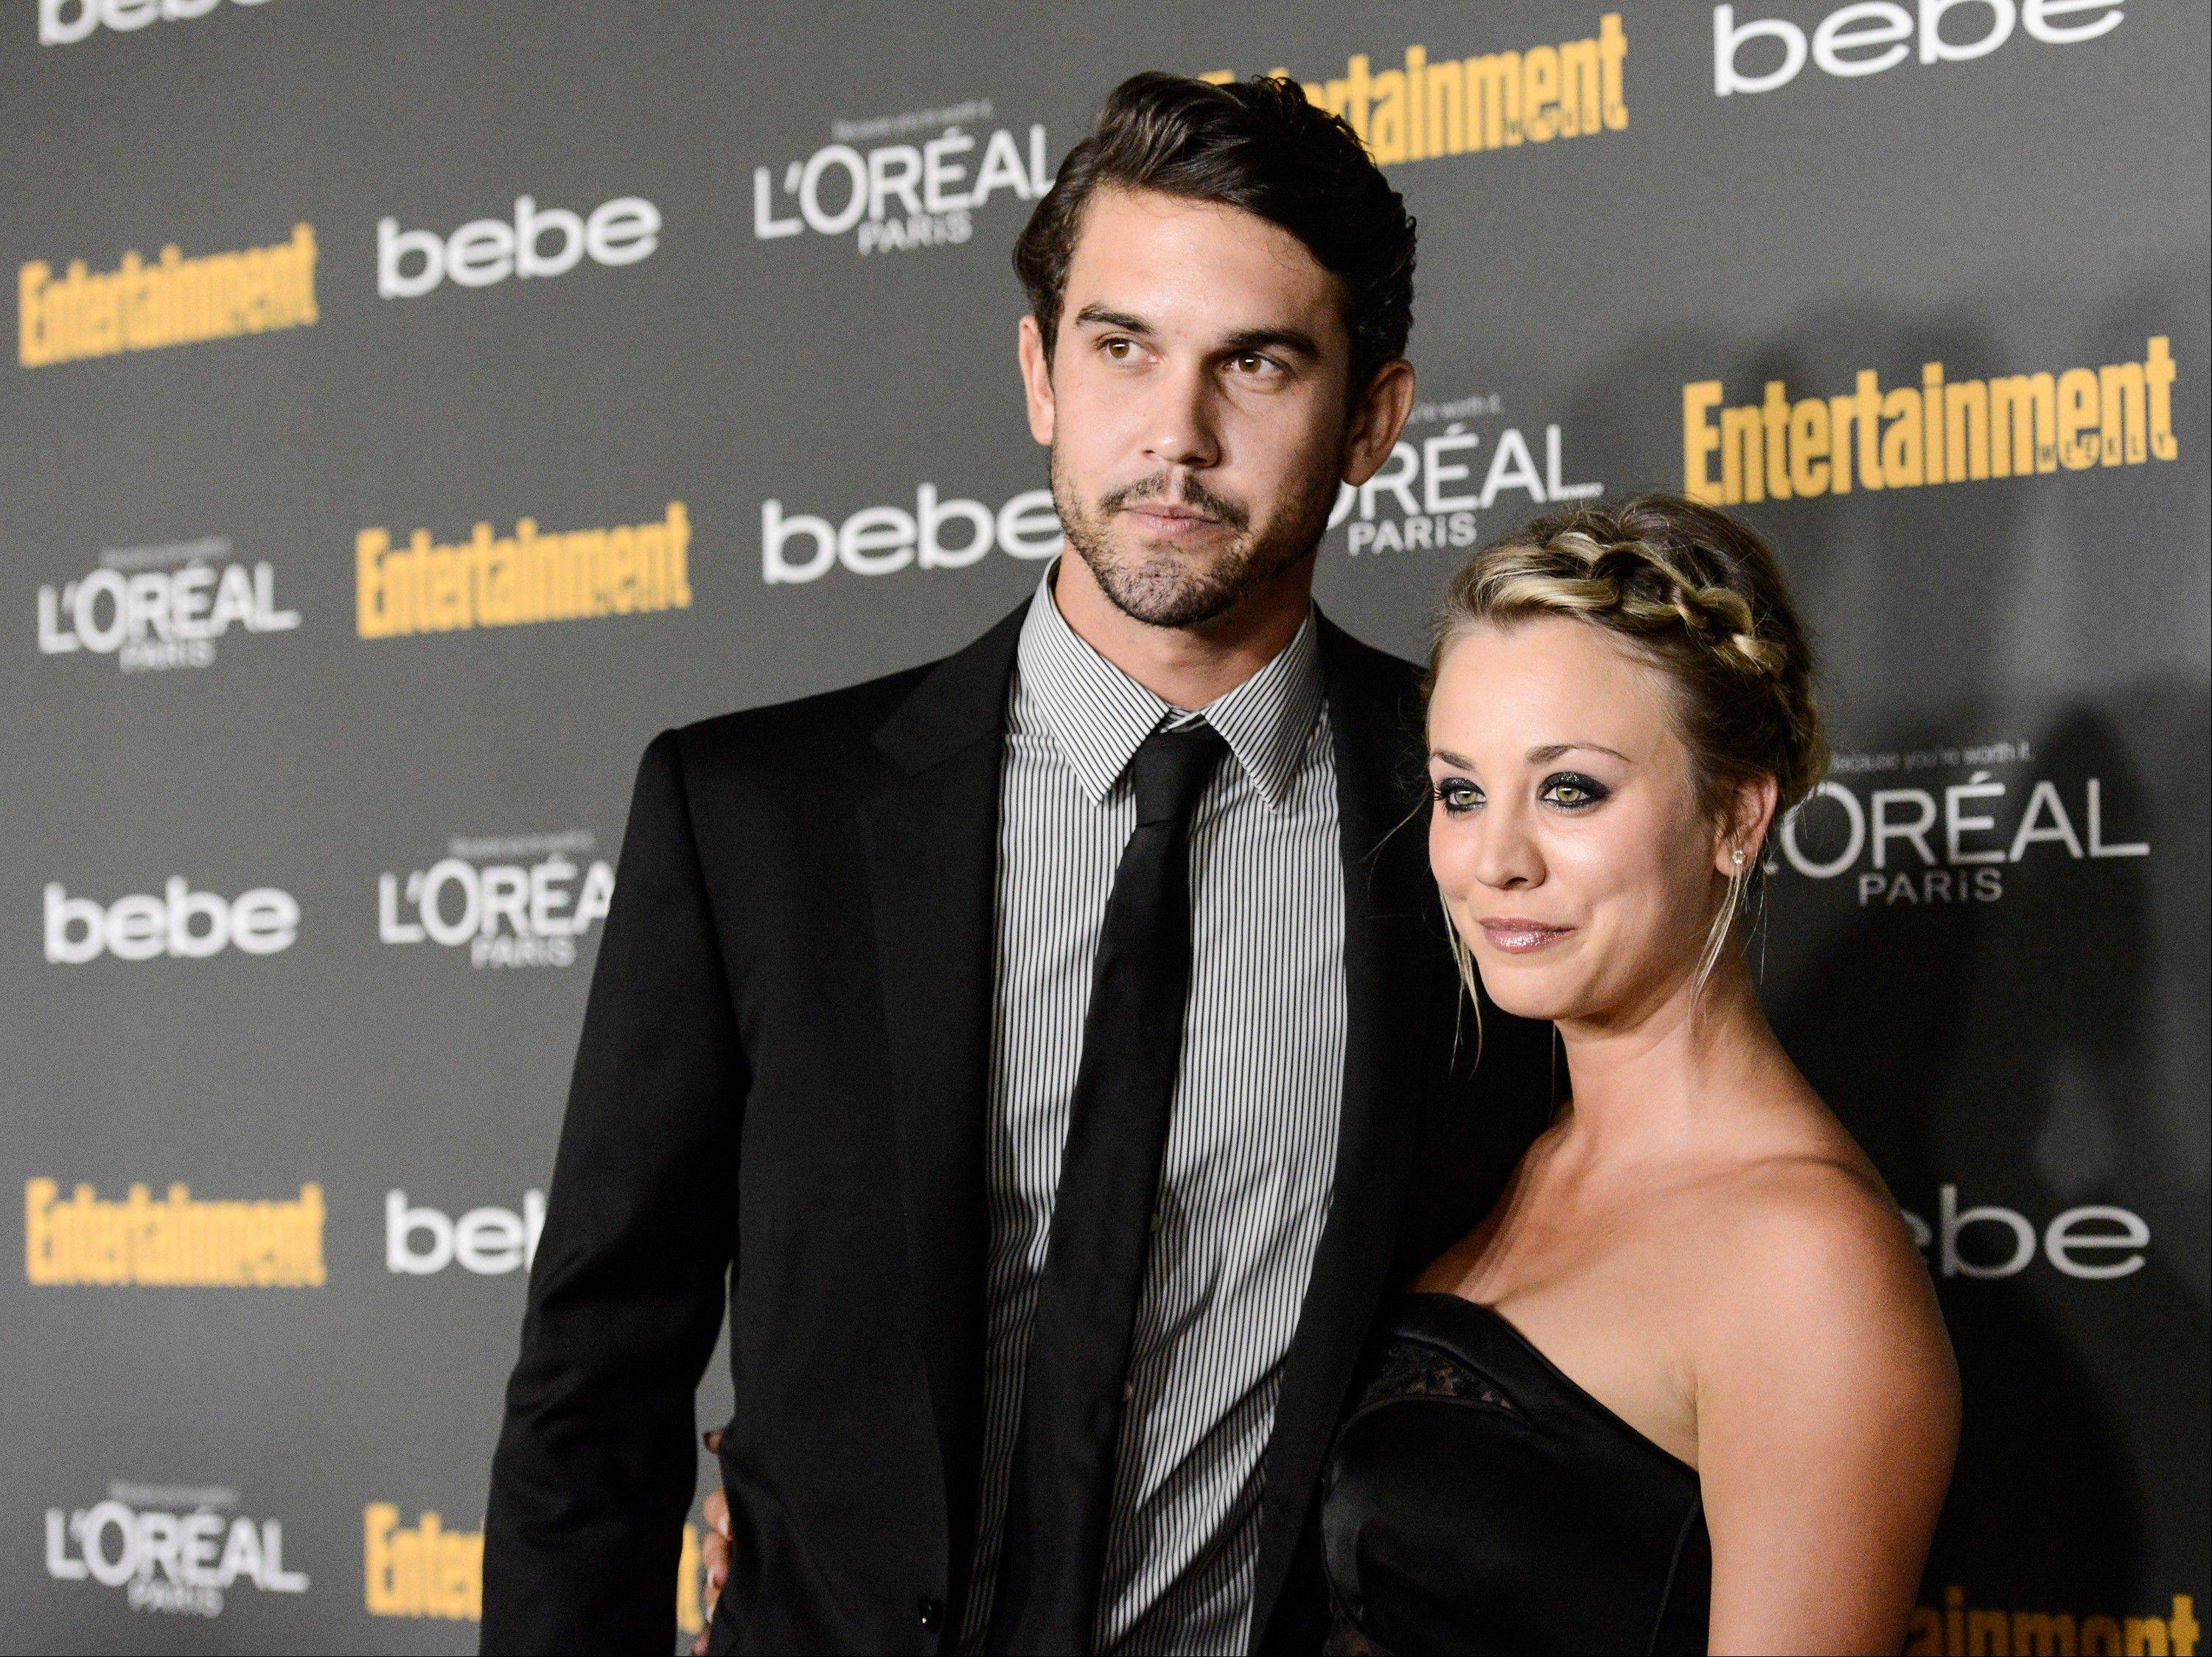 """The Big Bang Theory"" star Kaley Cuoco wed tennis pro Ryan Sweeting in a New Year's Eve ceremony in California, her rep confirms."